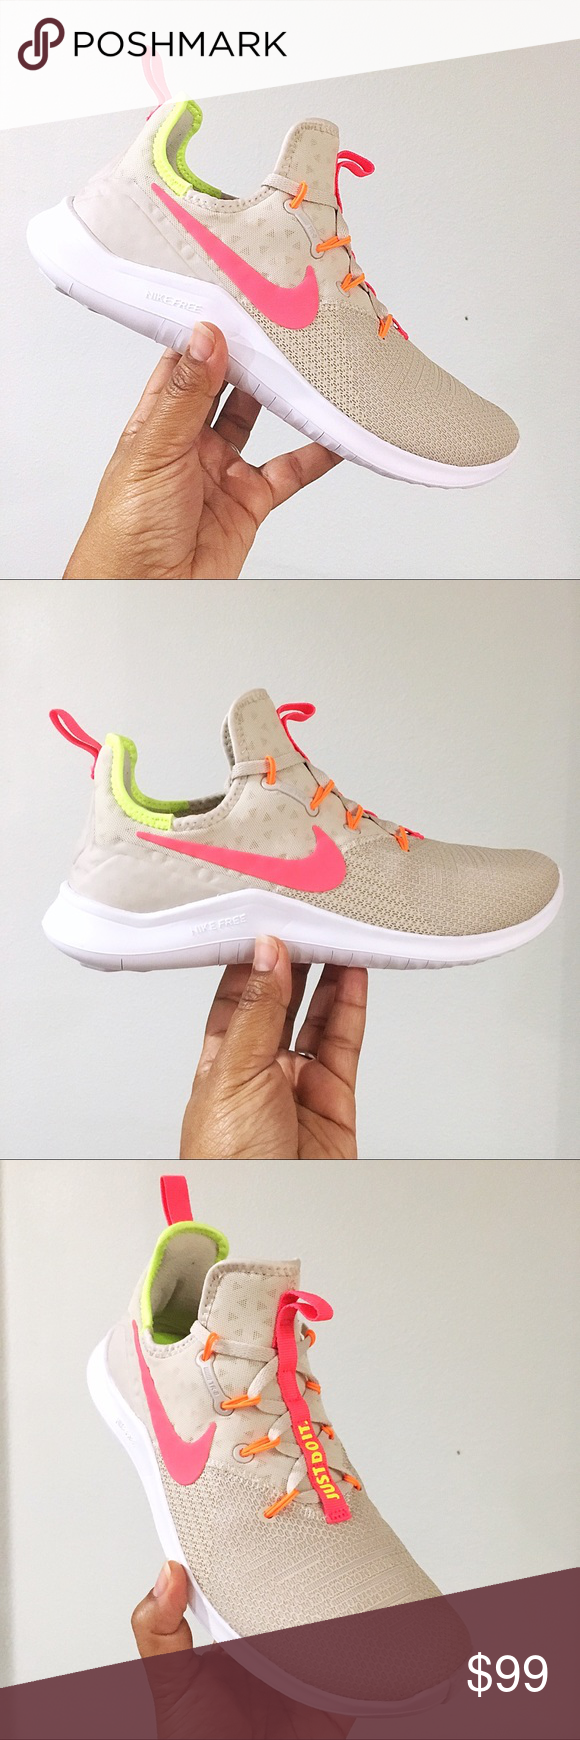 c84ea9f90cd8 Women s Nike Free TR 8 Desert Sand Hot Punch White Brand New In Box WITH  lid. 🙌🏽 - Nike Free Trainer 8 Desert Sand Hot Punch Volt 942888 004 -  Lightweight ...